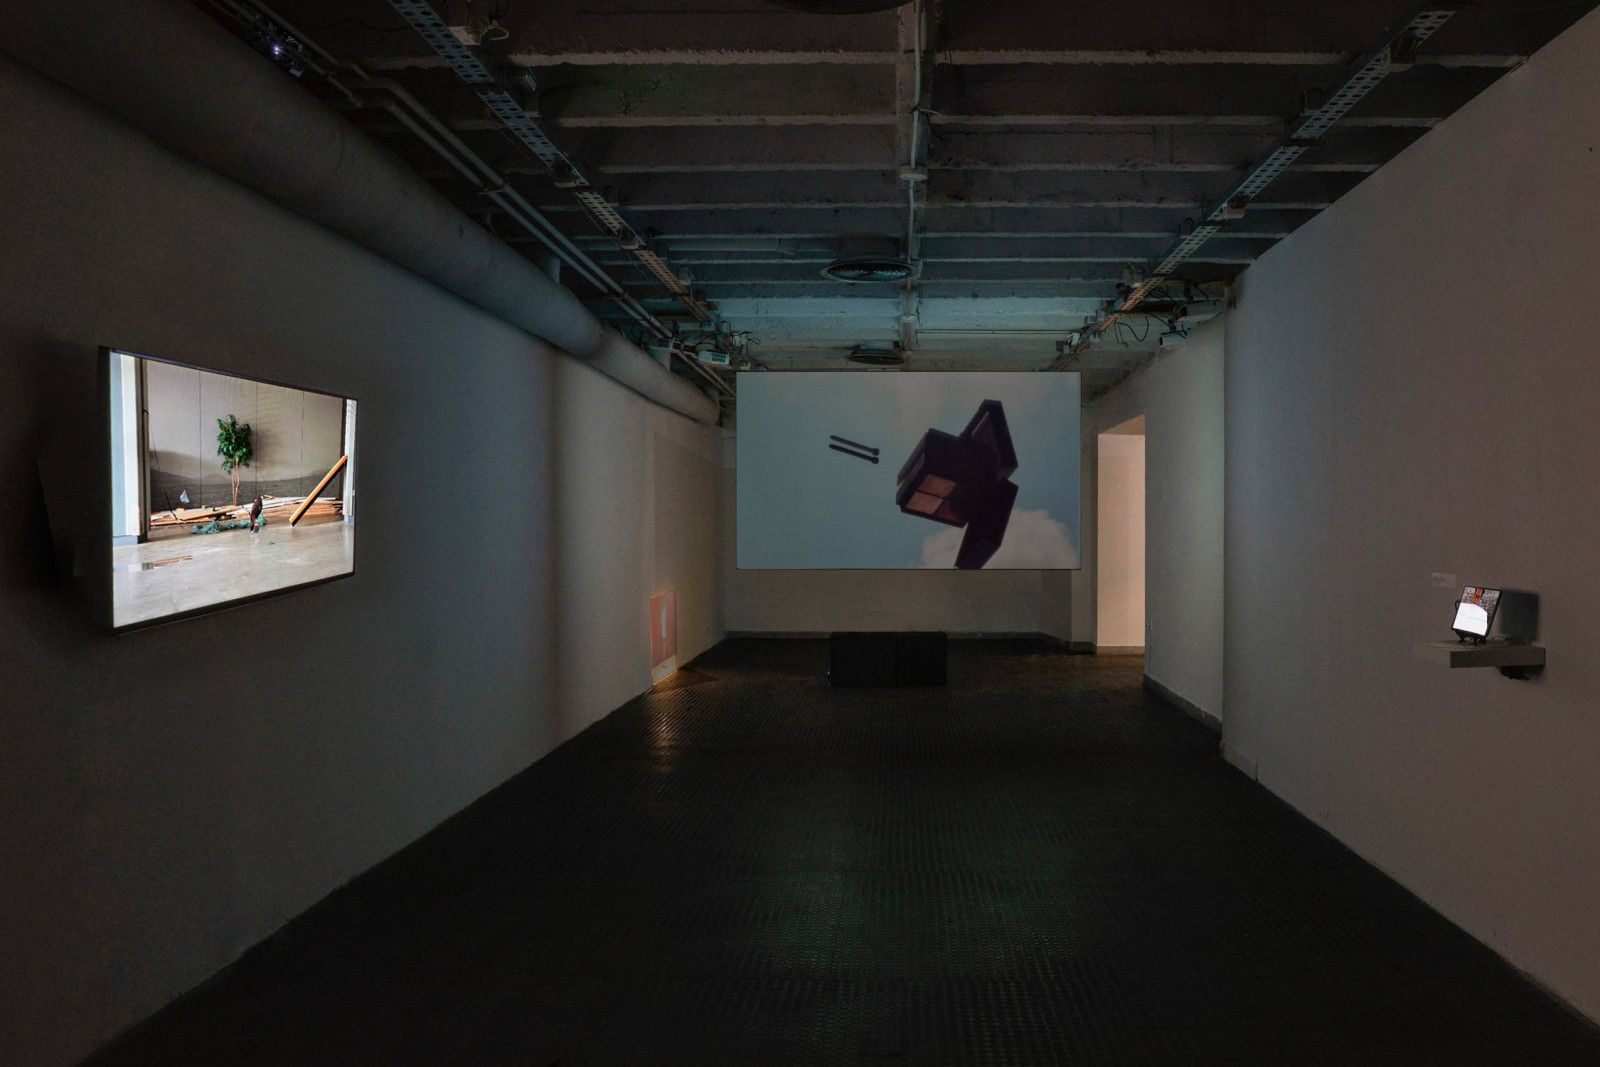 The Way of Objects, Podroom Gallery, Belgrade, Serbia, 2017. Curated by Isabelle Henriot & Nyima Leray.